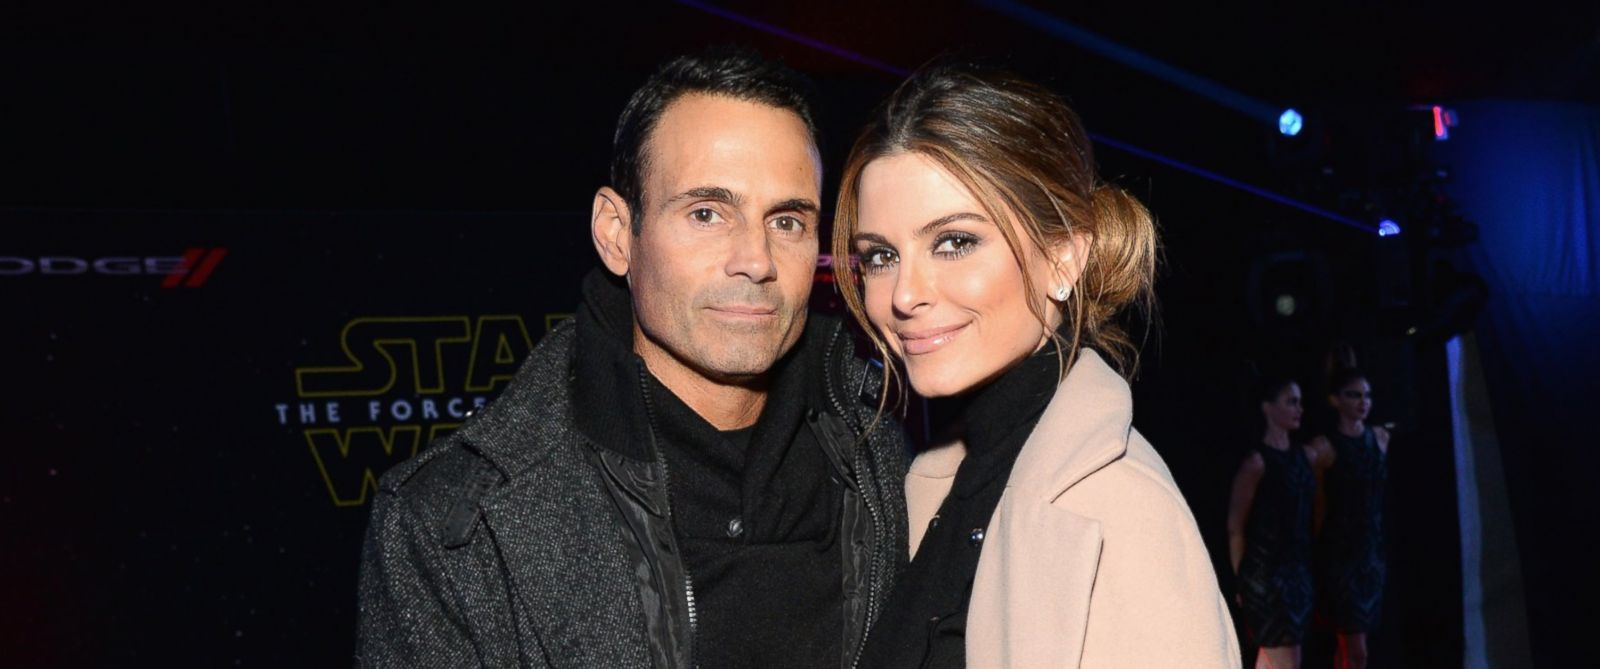 """PHOTO: Keven Undergaro and Maria Menounos arrive at the premiere of Walt Disney Pictures and Lucasfilms """"Star Wars: The Force Awakens,"""" Dec. 14, 2015 in Hollywood, Calif."""